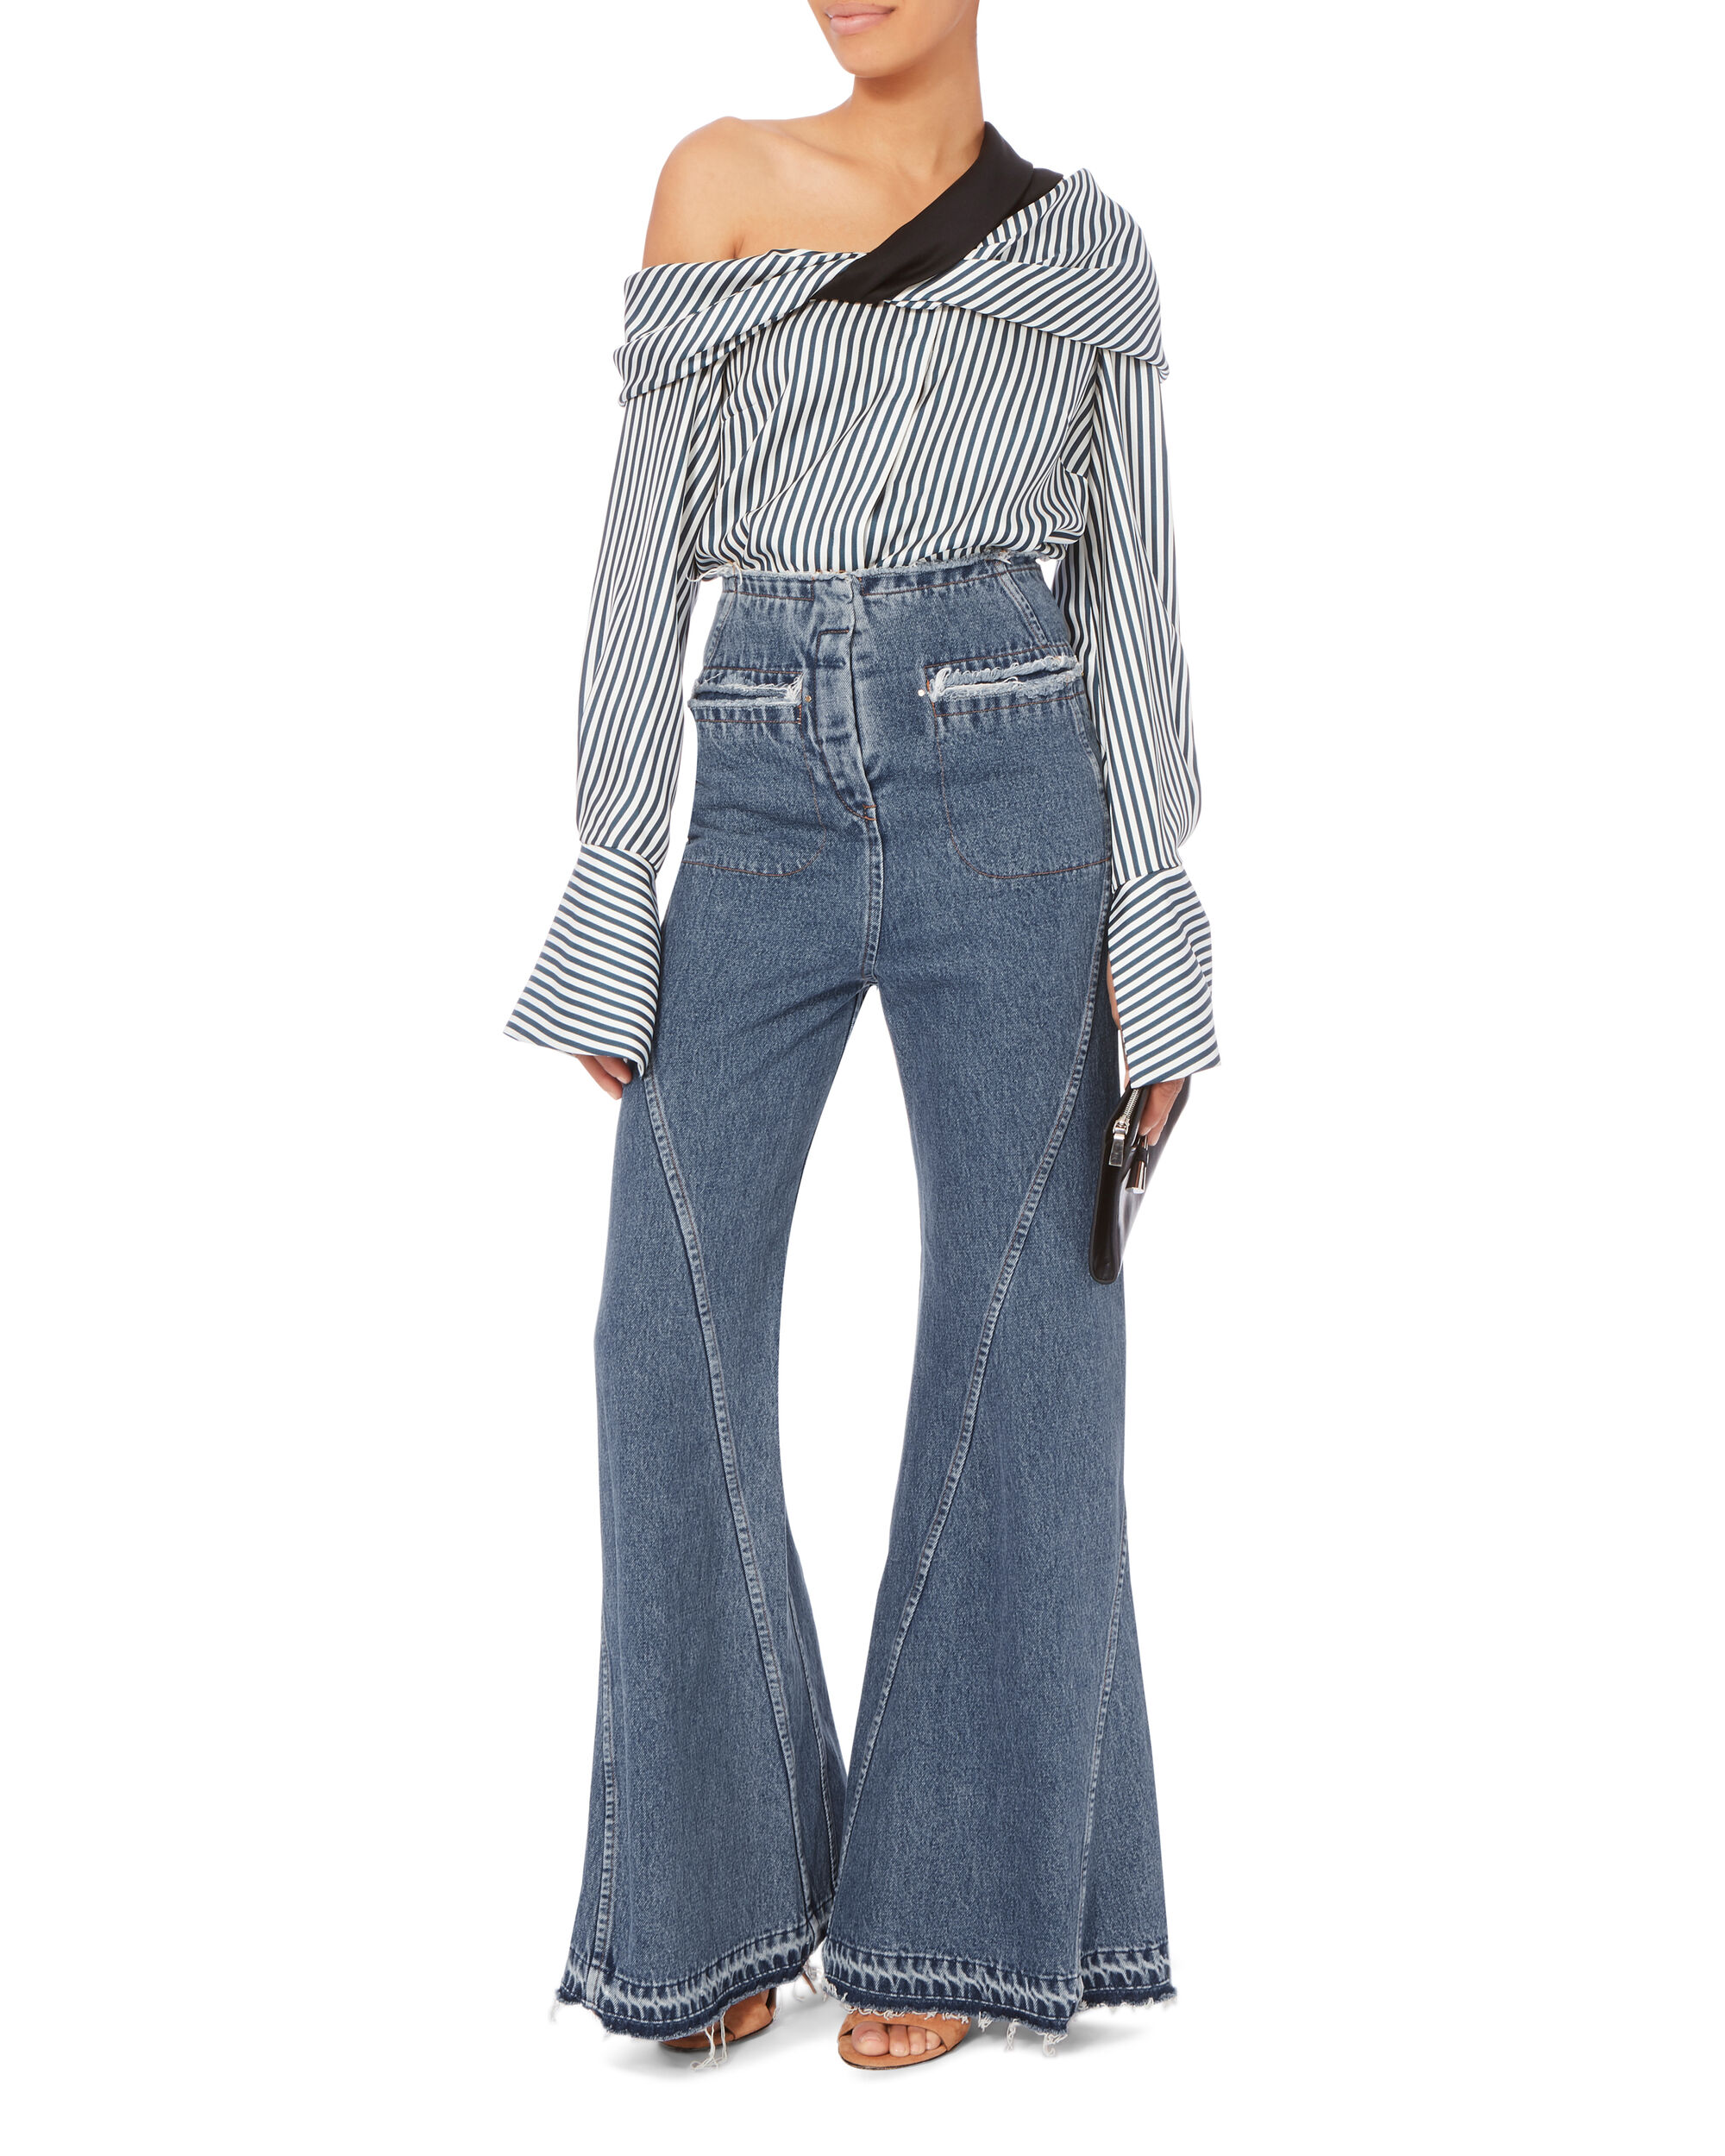 High-Waist Bell Flare Jeans, BLUE, hi-res